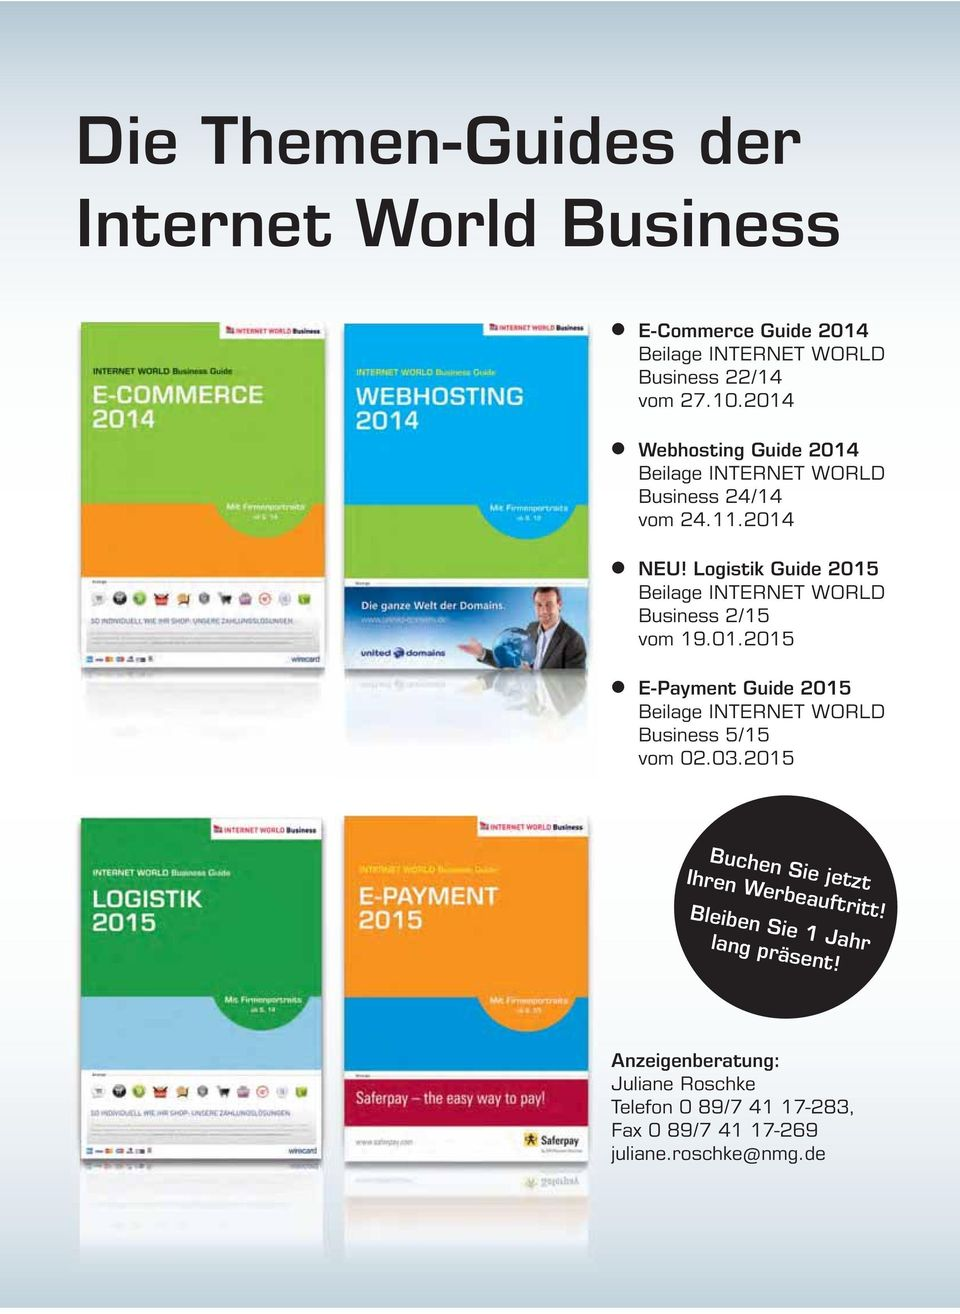 Logistik Guide 2015 Beilage INTERNET WORLD Business 2/15 vom 19.01.2015 E-Payment Guide 2015 Beilage INTERNET WORLD Business 5/15 vom 02.